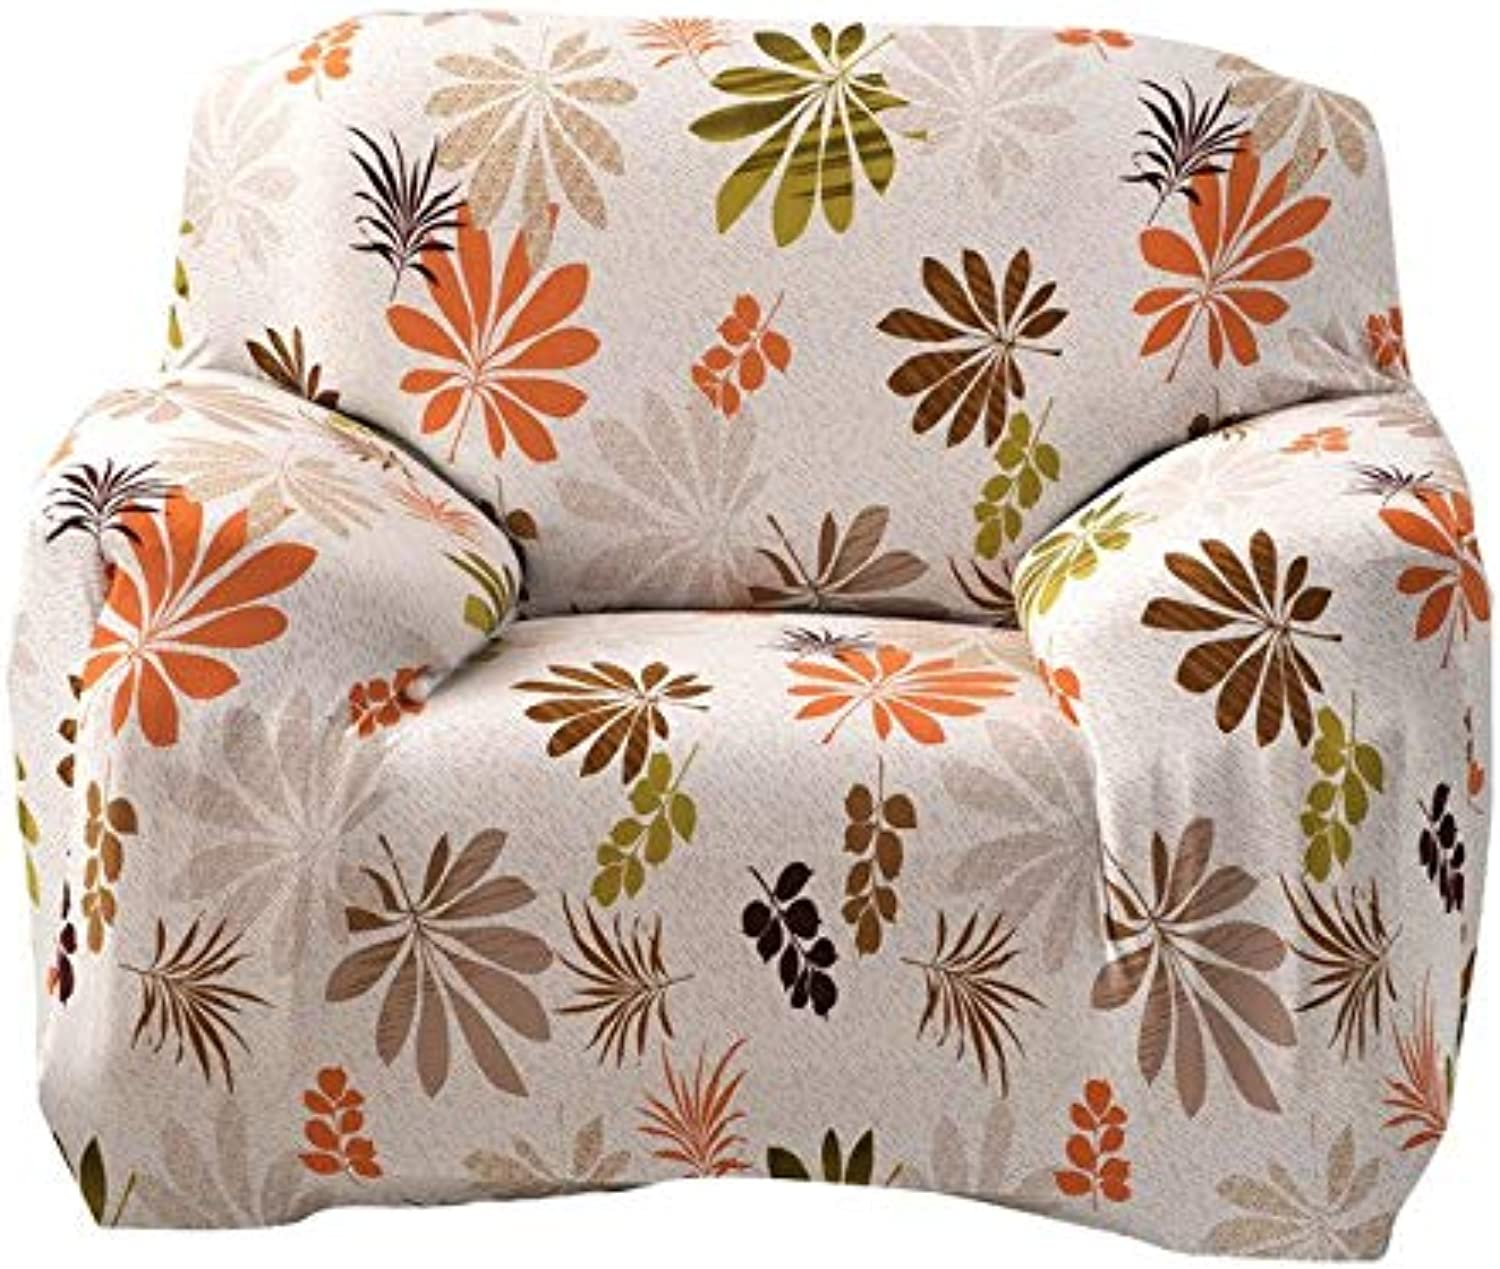 2 Style Sofa Cover Sofa Slipcover 1 2 3 4-Seat Single Two Three Four-Seater Tight Stretch Printed Sofa Canape Couch Slipcover   B 1 seat